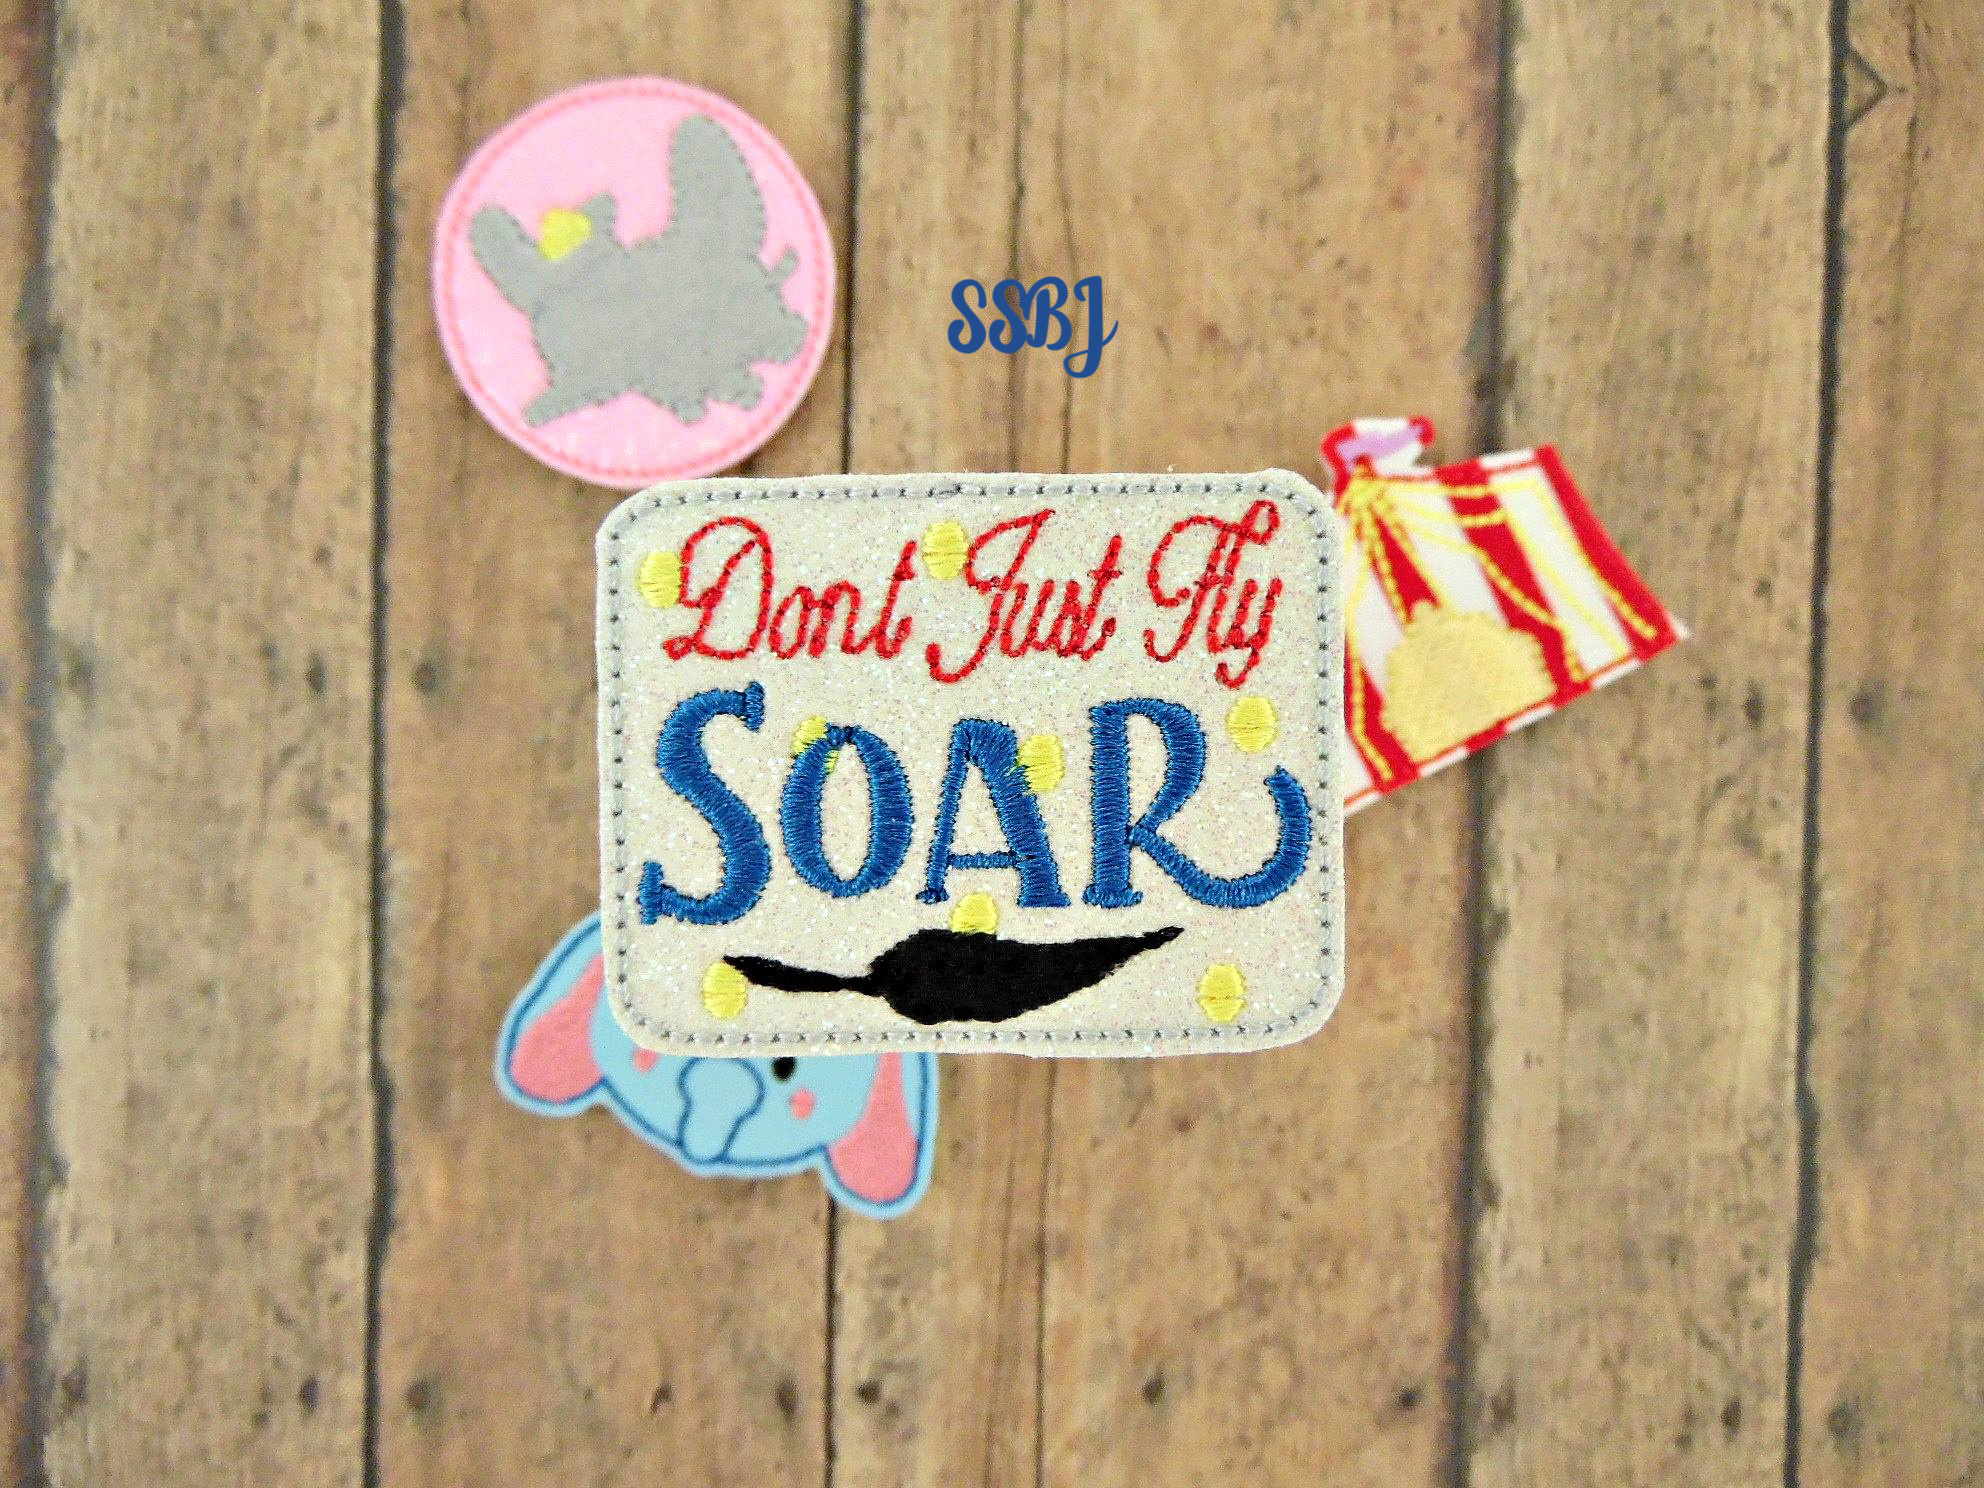 SSBJ SOAR Embroidery File